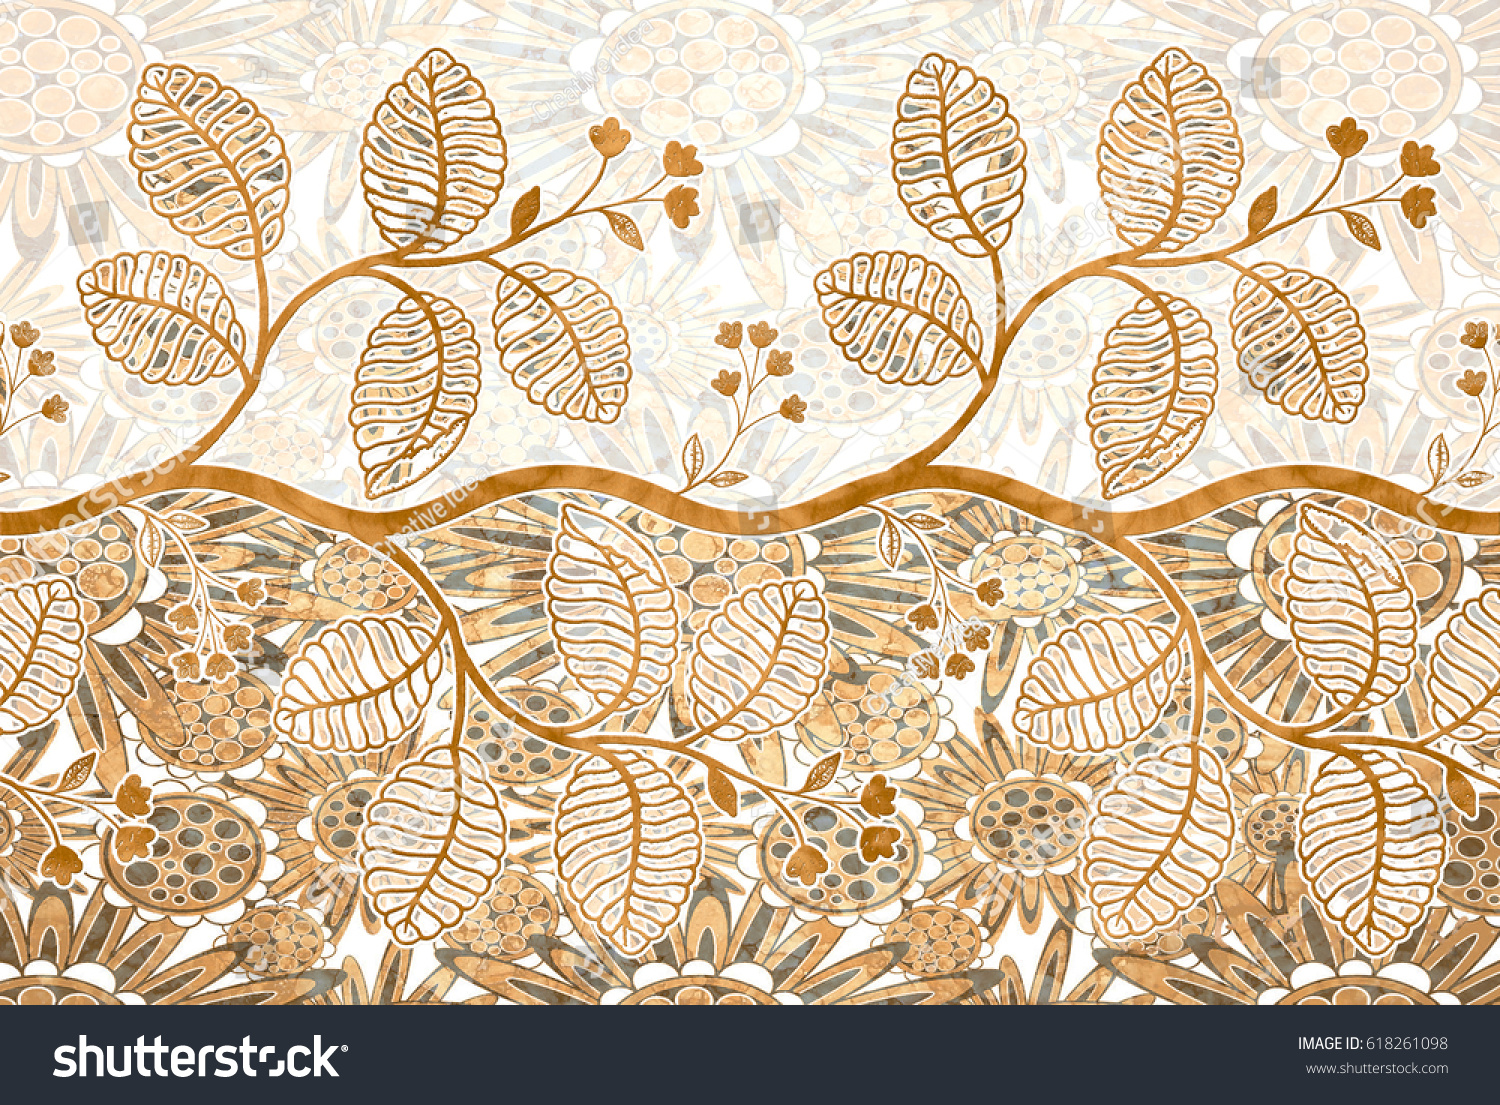 Abstract Home Decorative Leaf Wall Tiles Stock Illustration ...